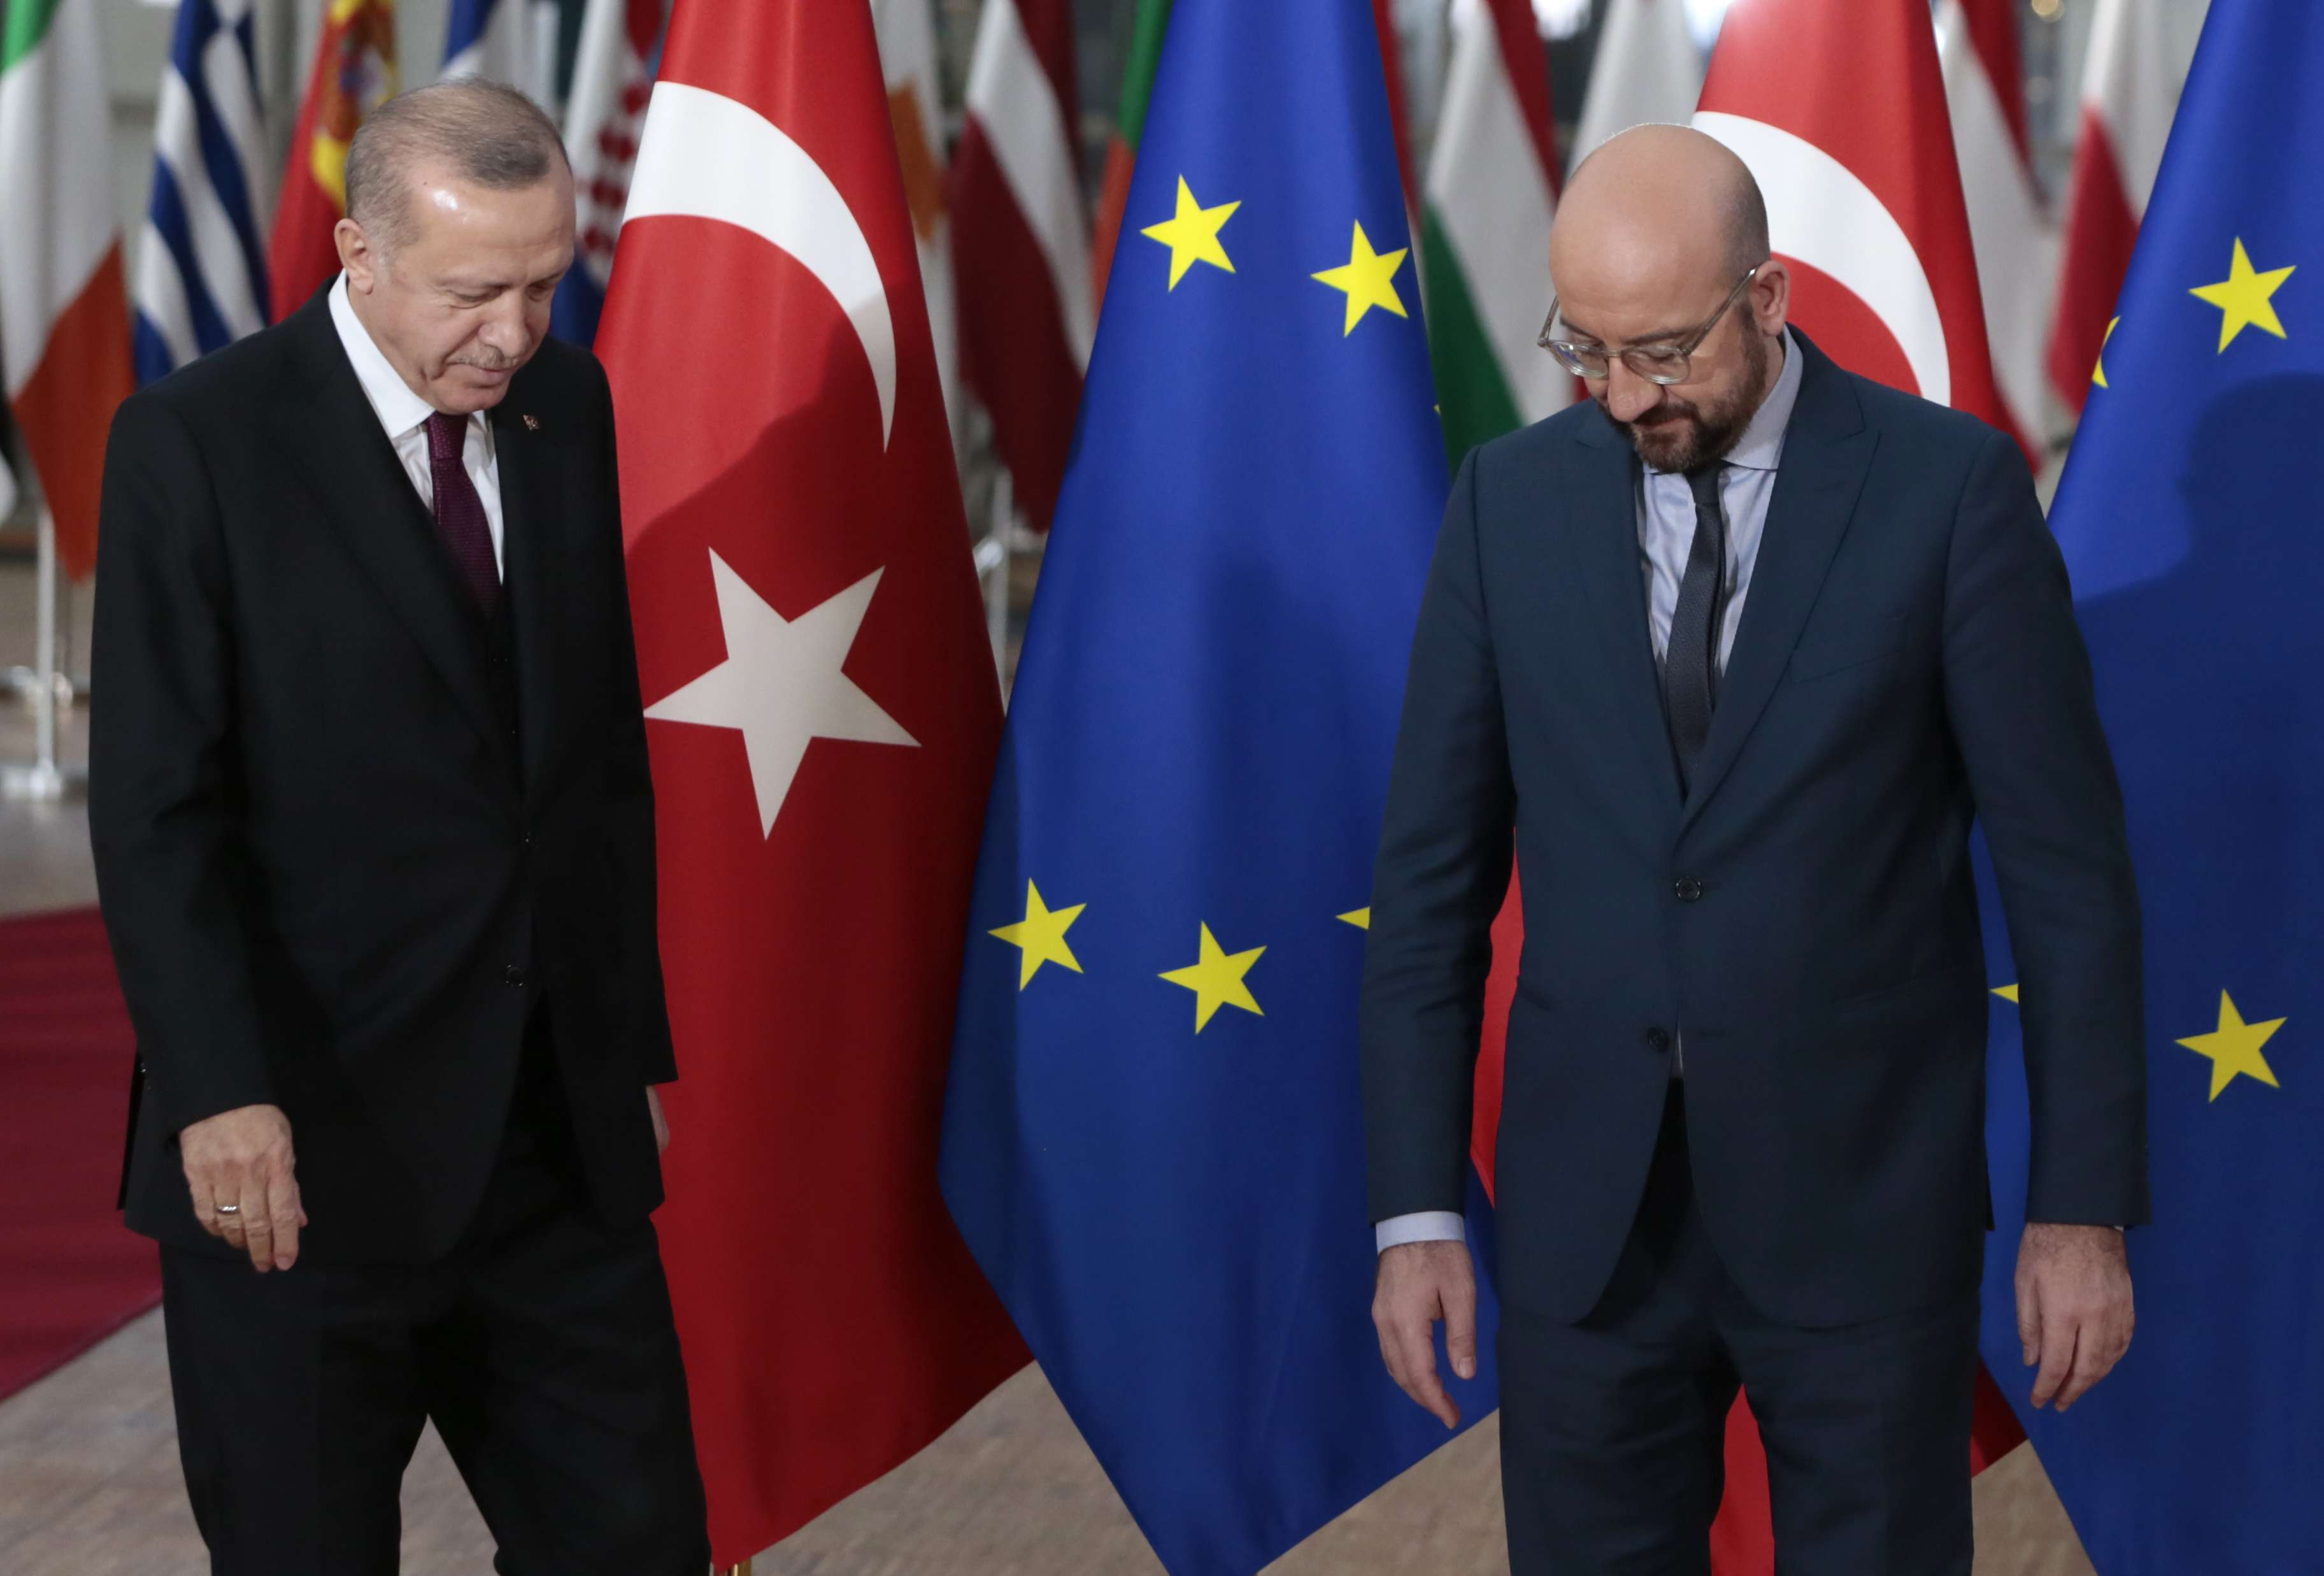 Turkish President Recep Tayyip Erdogan, left, stands with European Council President Charles Michel. (AP)